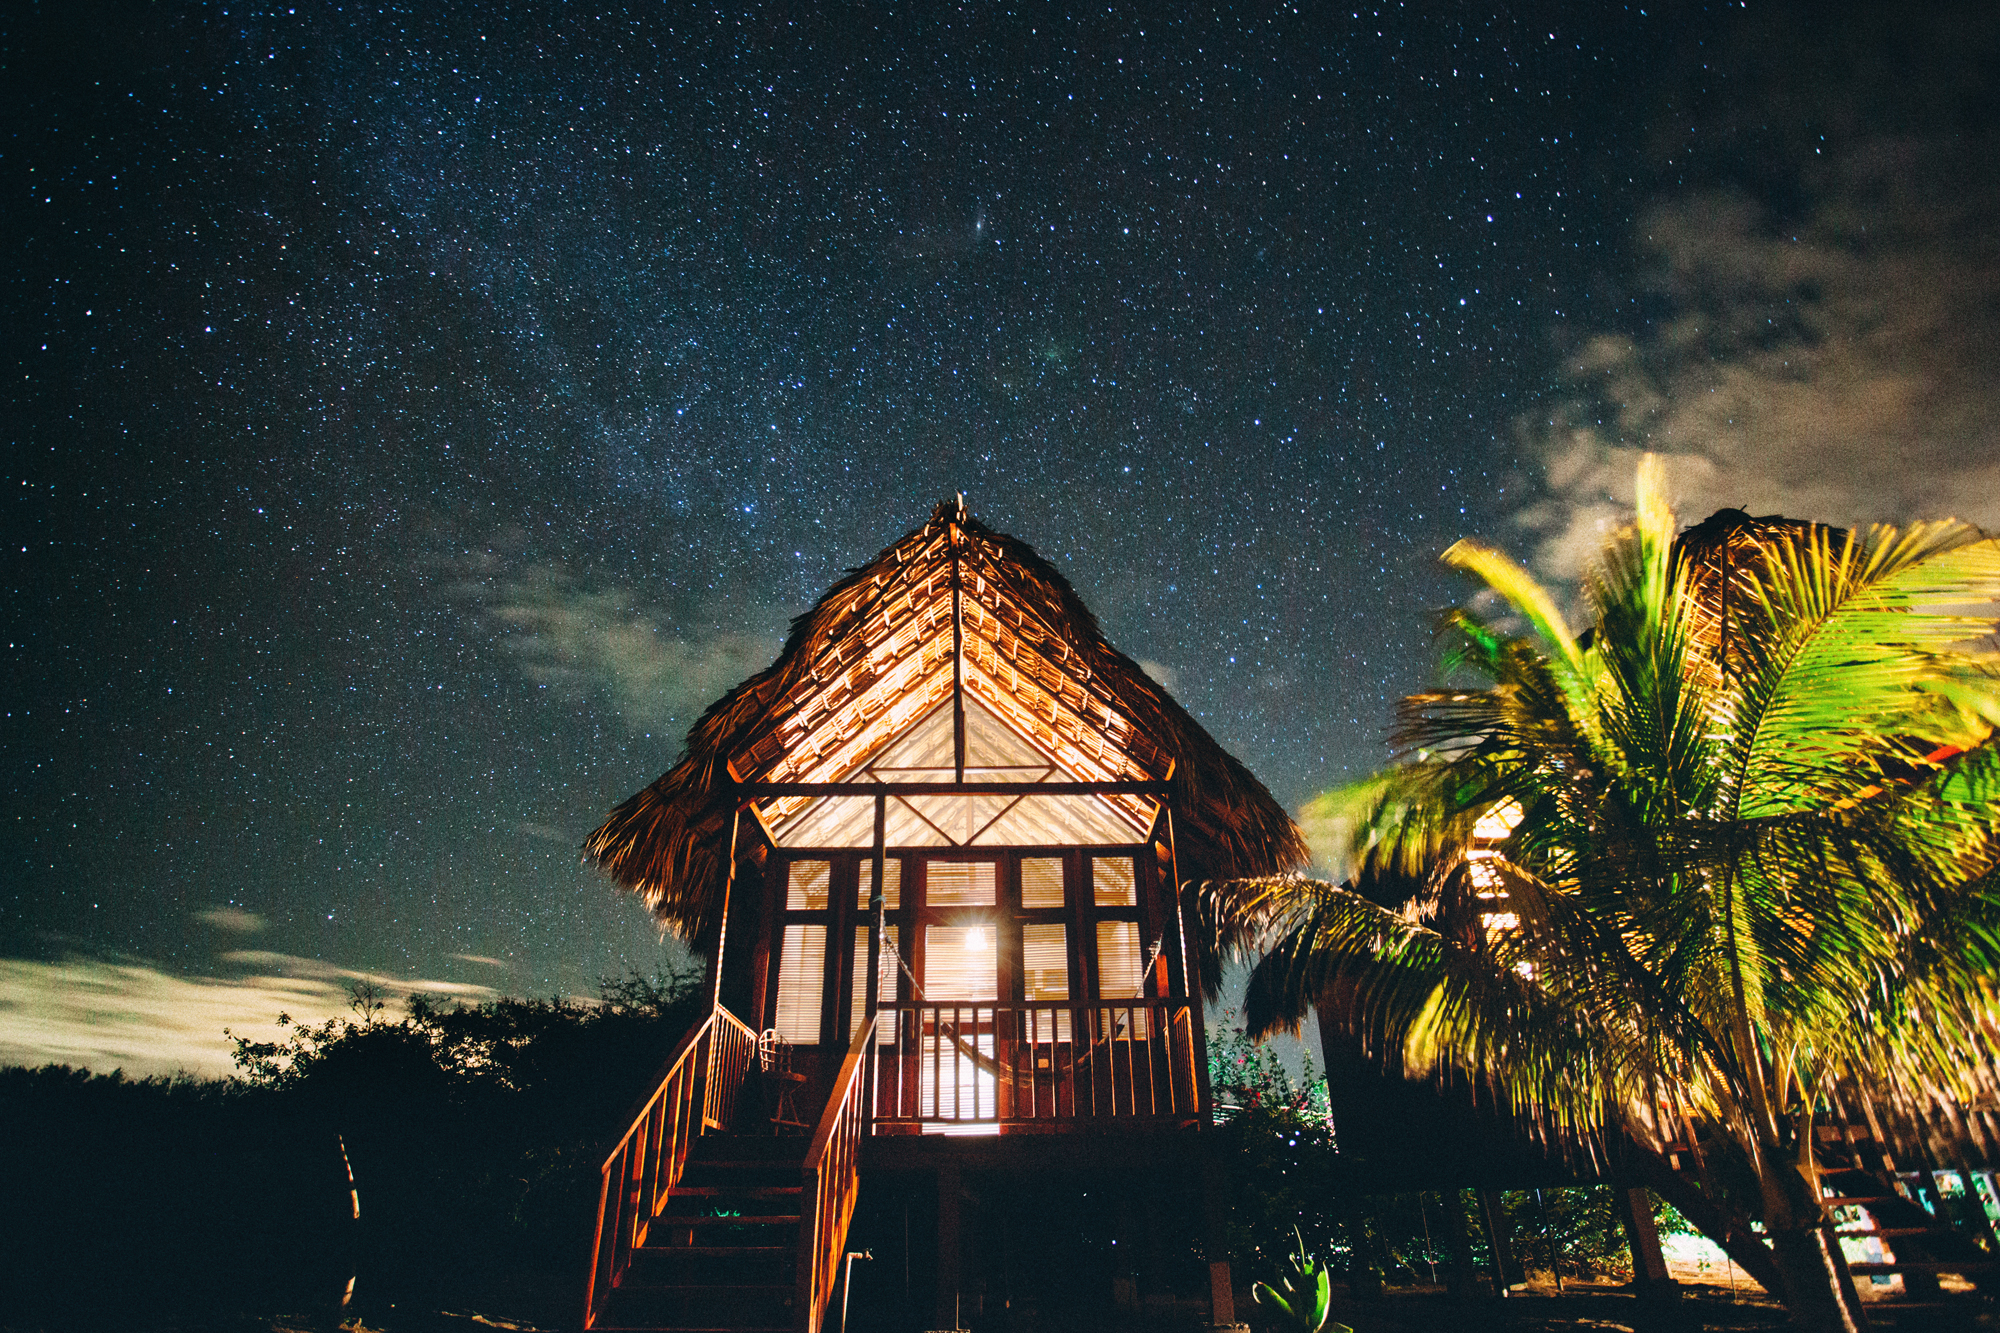 Small nicaraguan hut, underneath the giant.